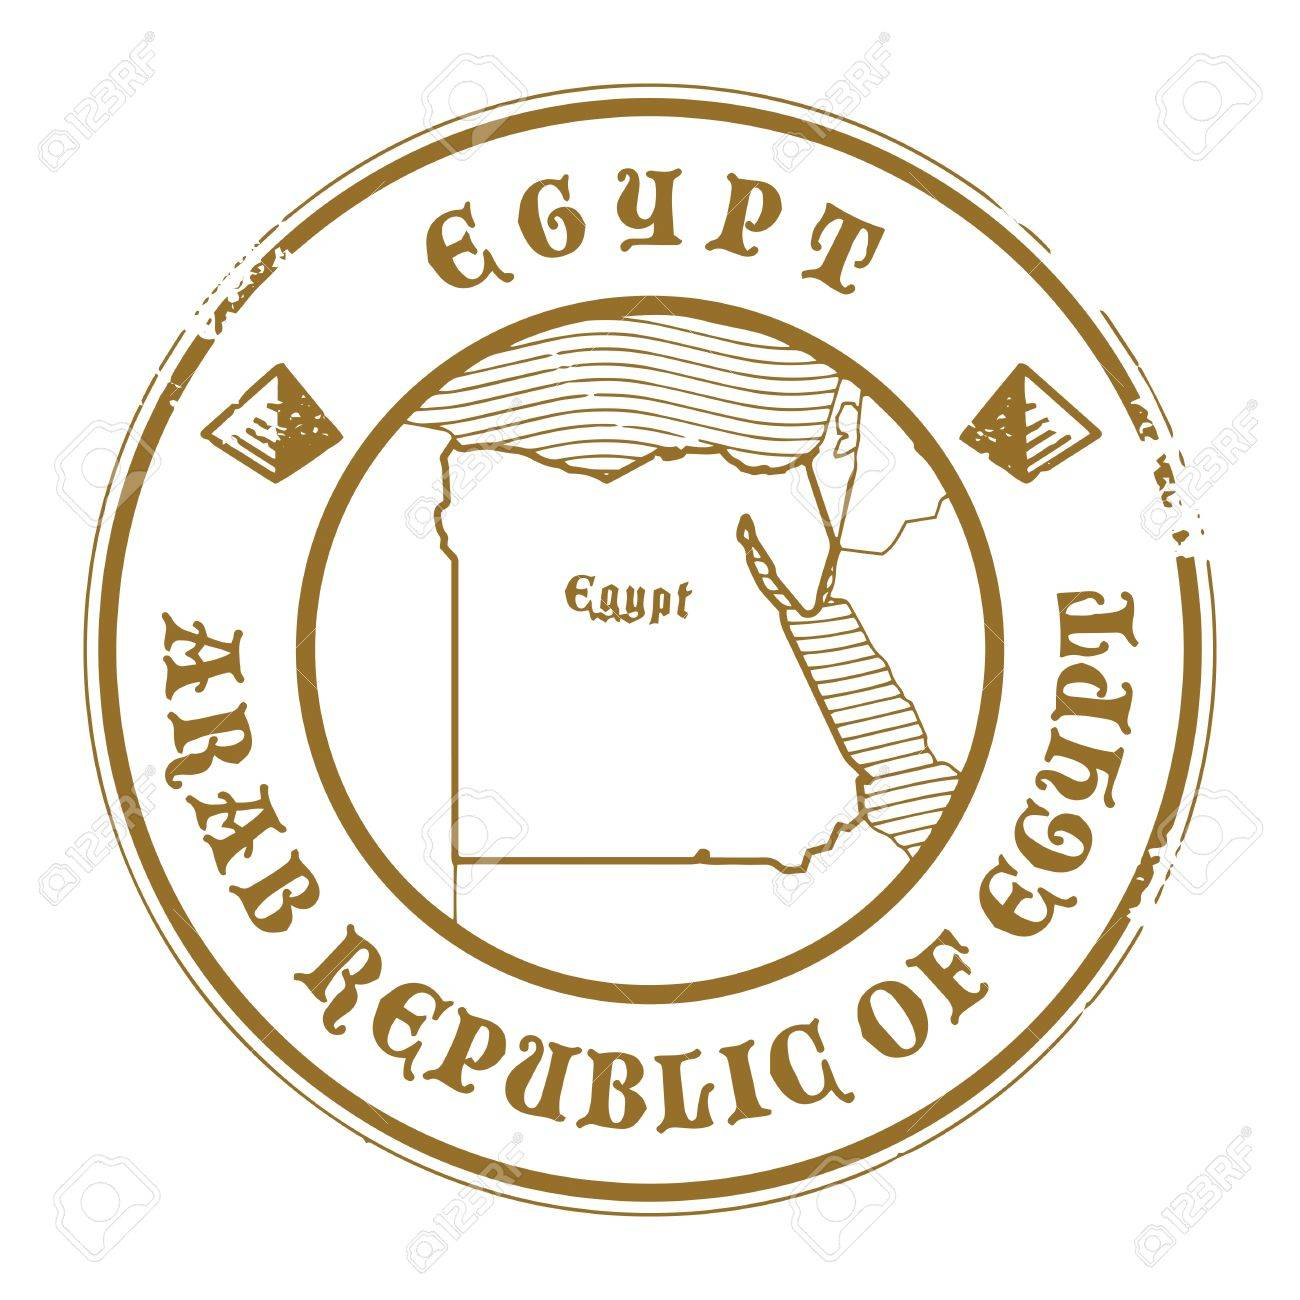 Grunge Rubber Stamp With The Name And Map Of Egypt Royalty Free - Map of egypt vector free